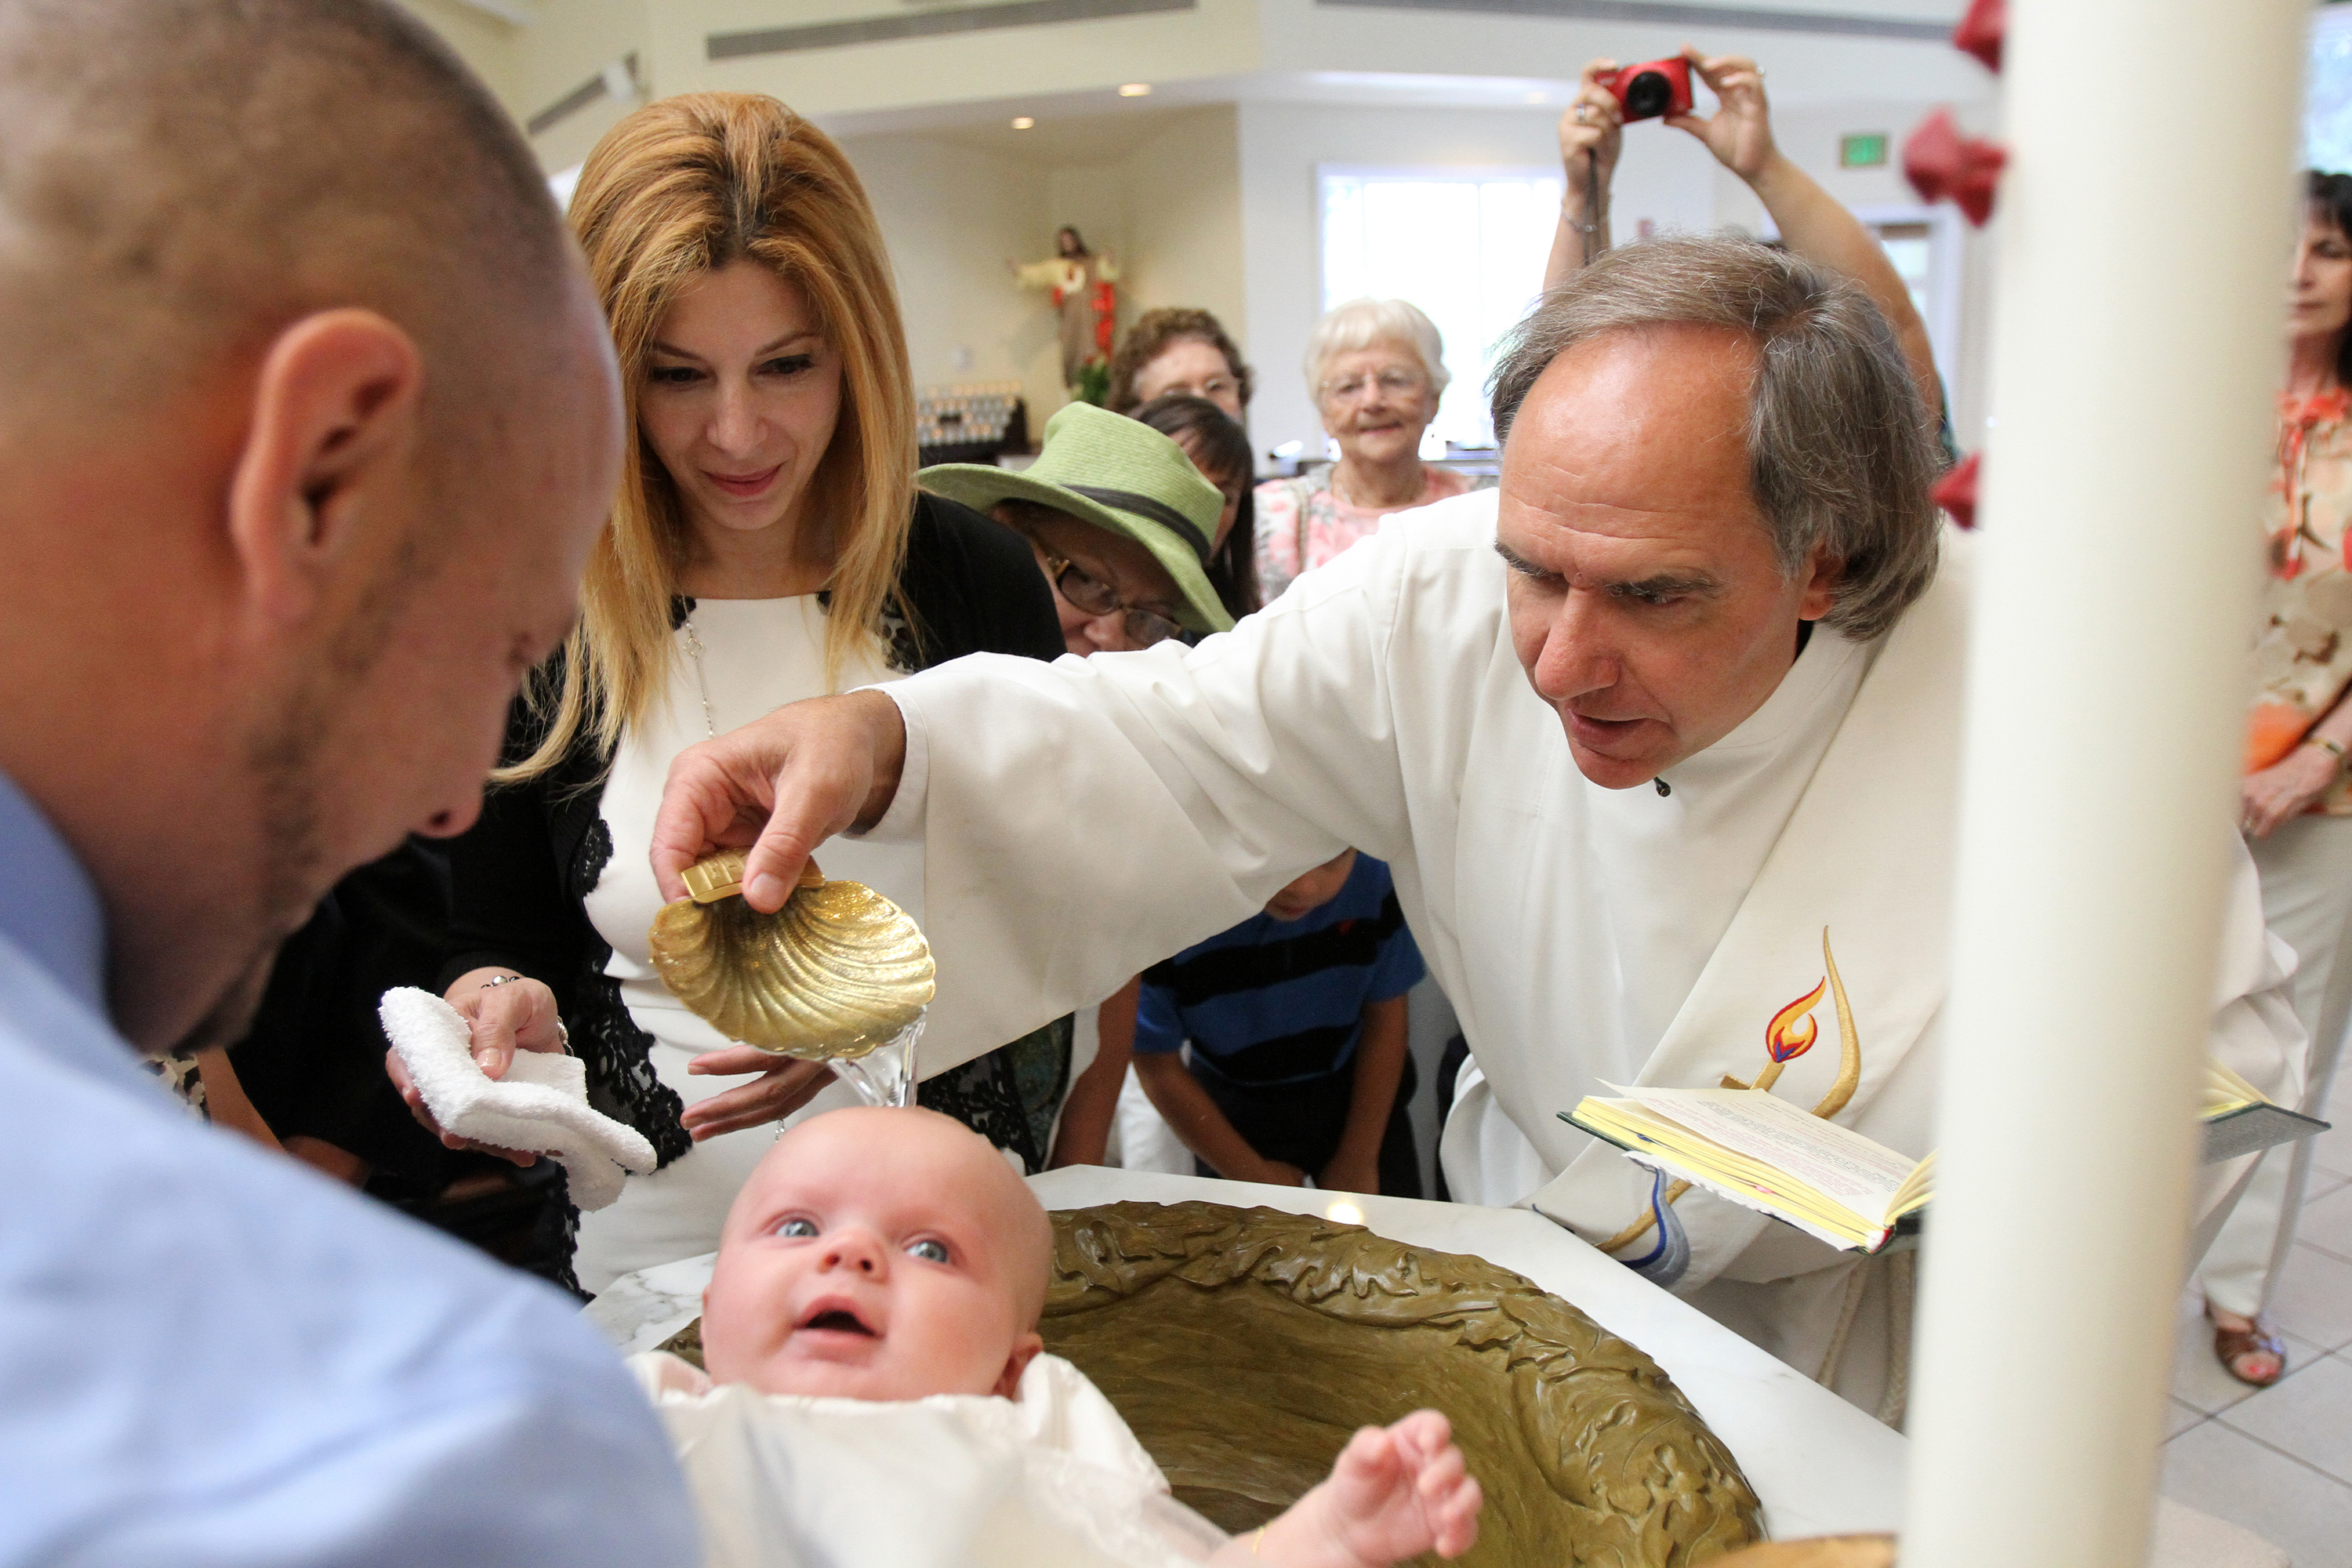 pope francis discusses ordination of married men in response to deacon mark herrmann baptizes 4 month old victoria marie domke at st jude